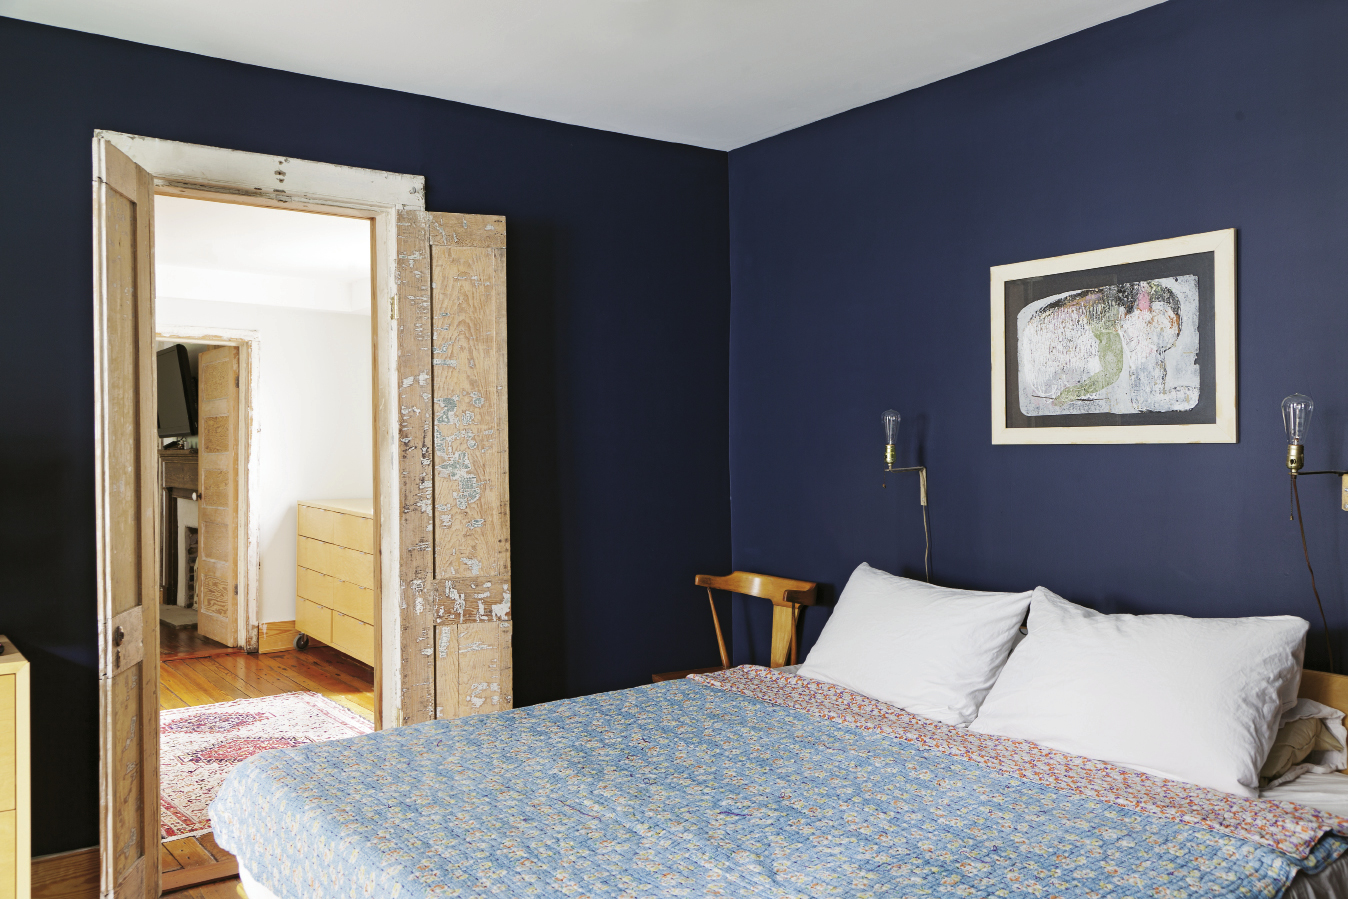 The couple's bedroom was painted navy to facilitate a good night's sleep.